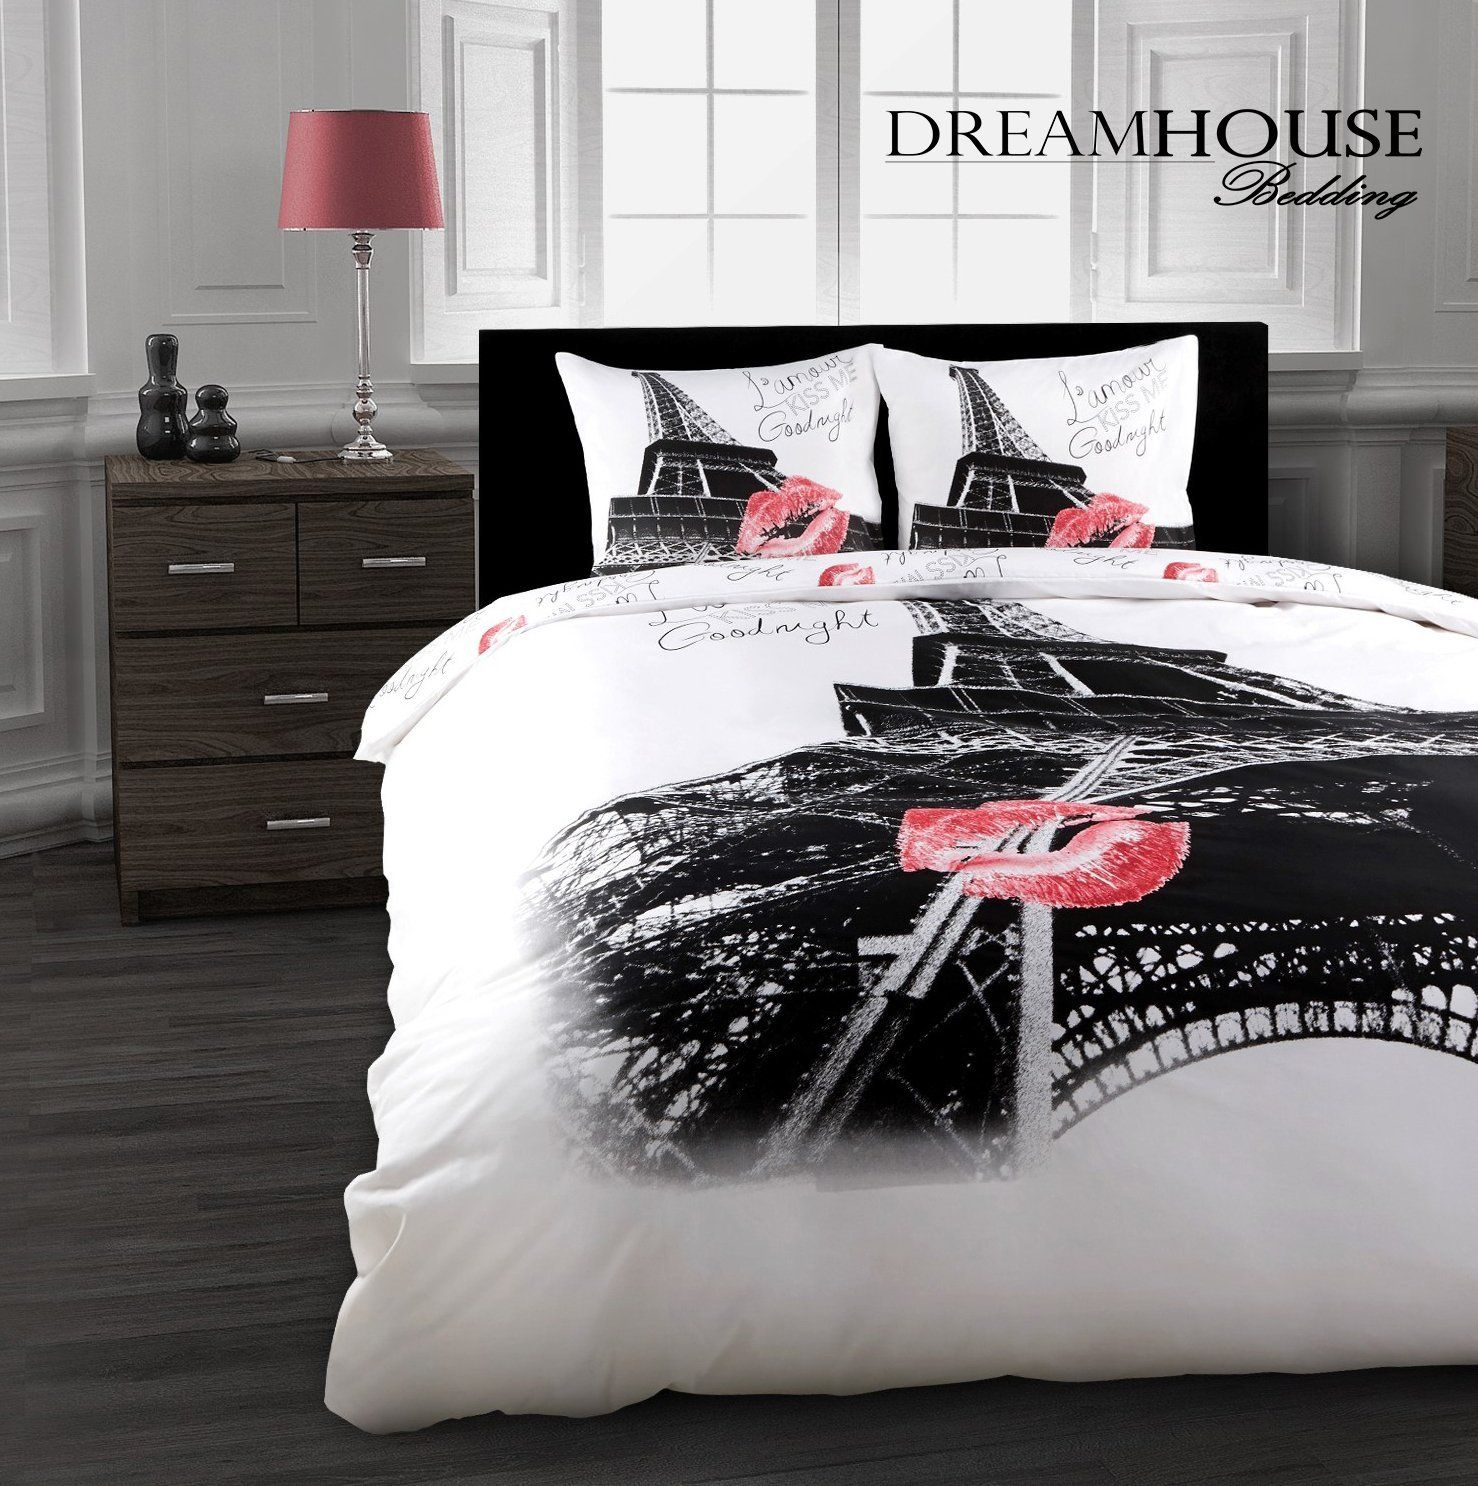 Ordinary Housse De Couette Tour Eiffel 140X200 #10: Amazon.com - Dreamhouse Bedding Duvet Cover Set Kiss My Paris 240x200/220 -